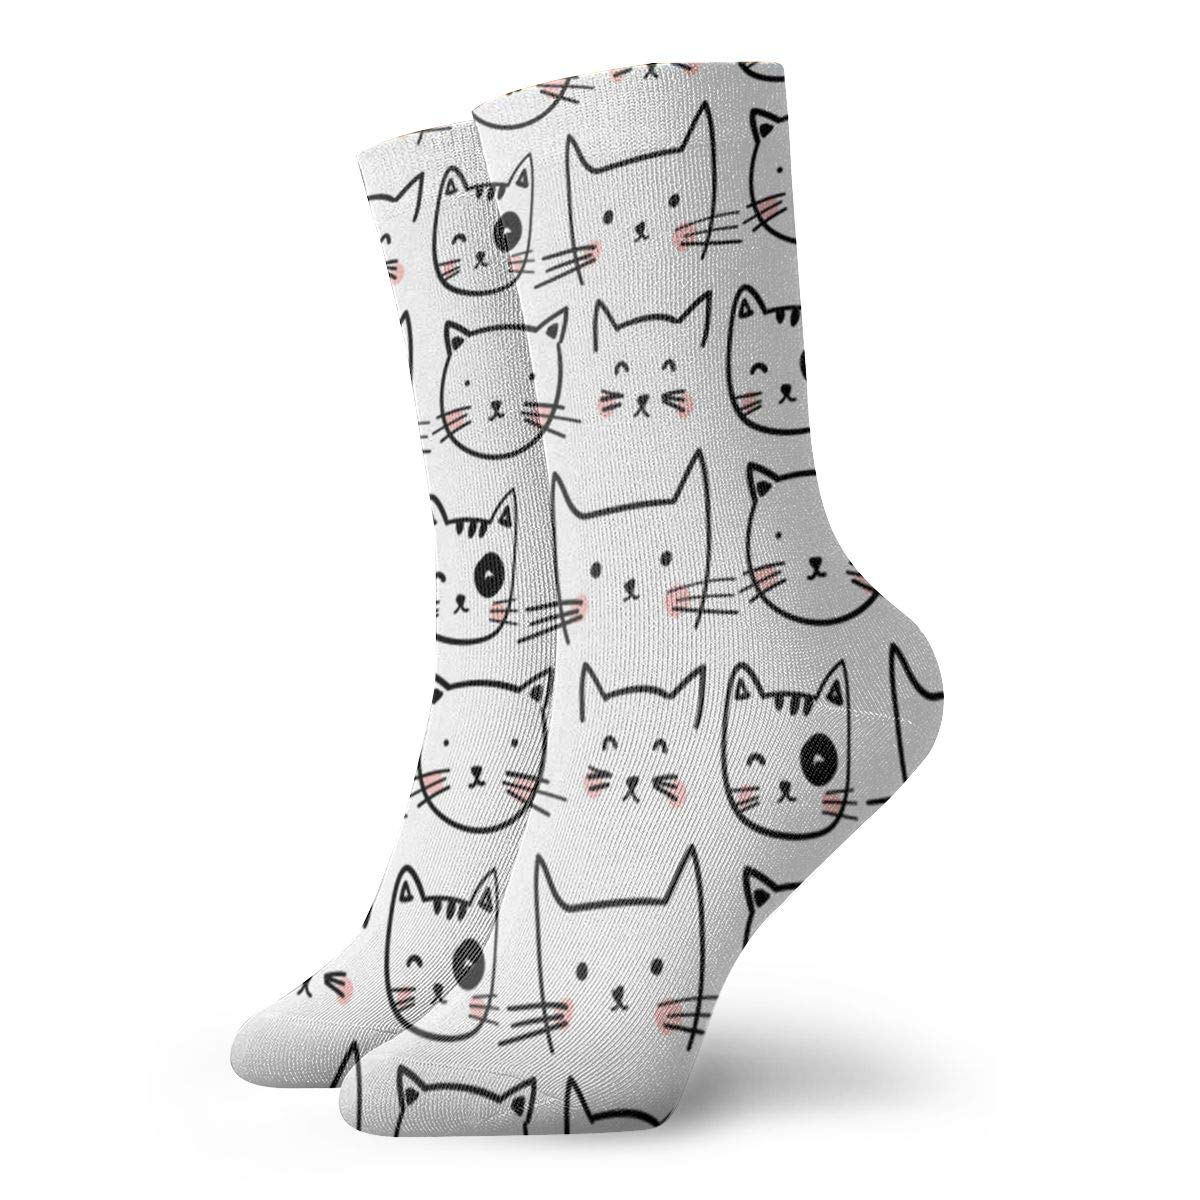 Cat Face Unisex Funny Casual Crew Socks Athletic Socks For Boys Girls Kids Teenagers